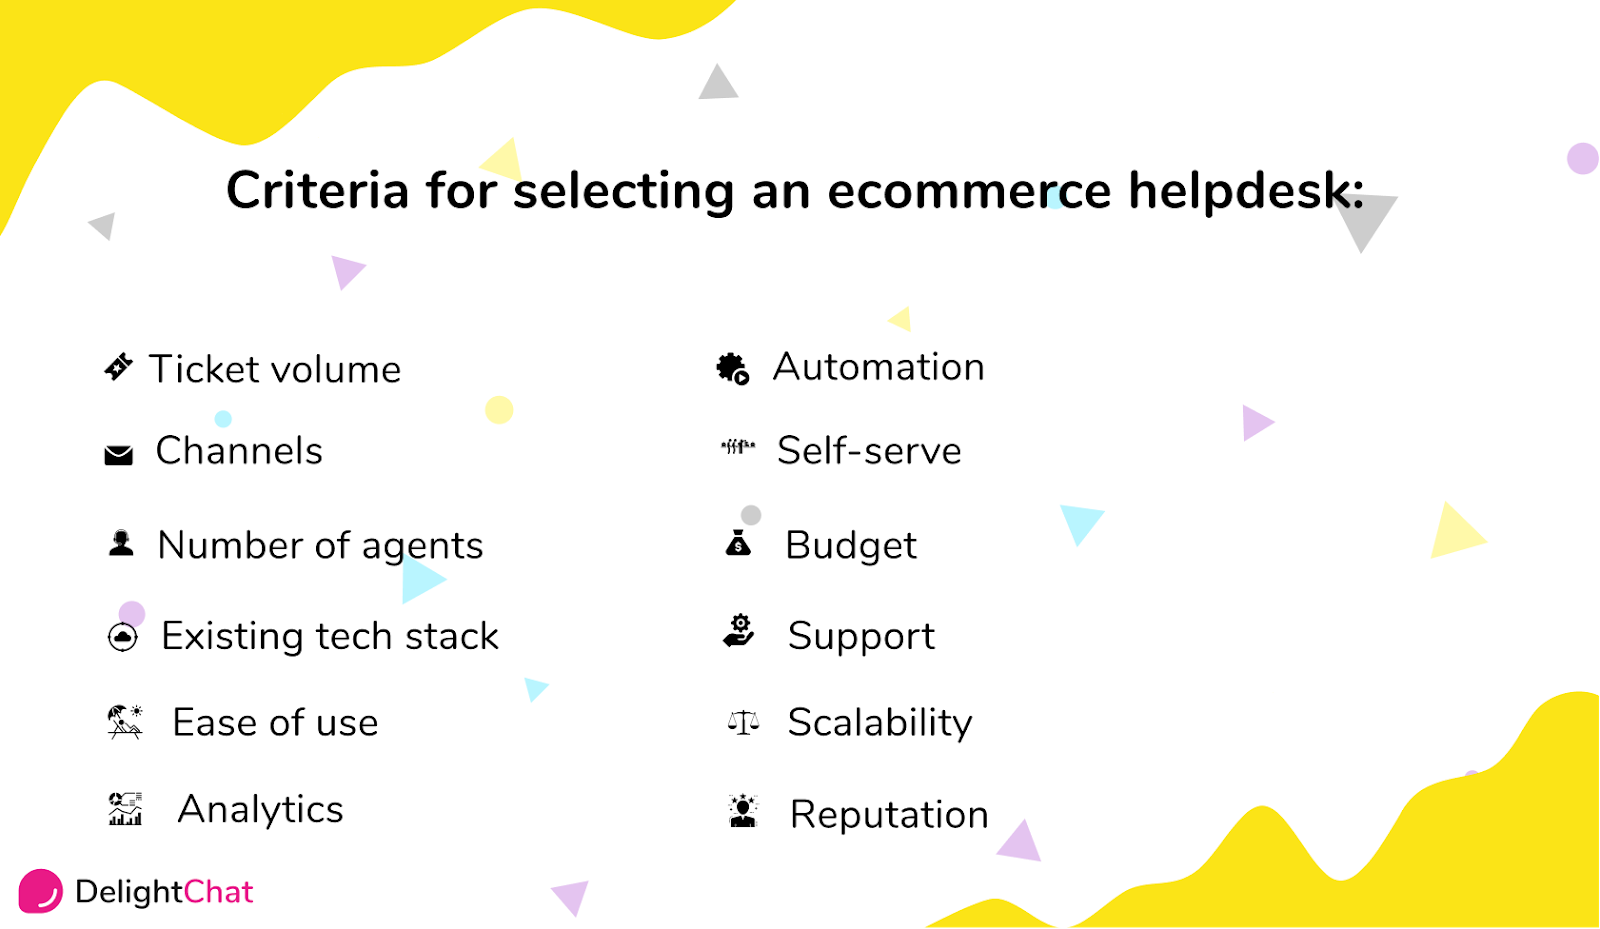 Criteria for selecting an ecommerce helpdesk for your store